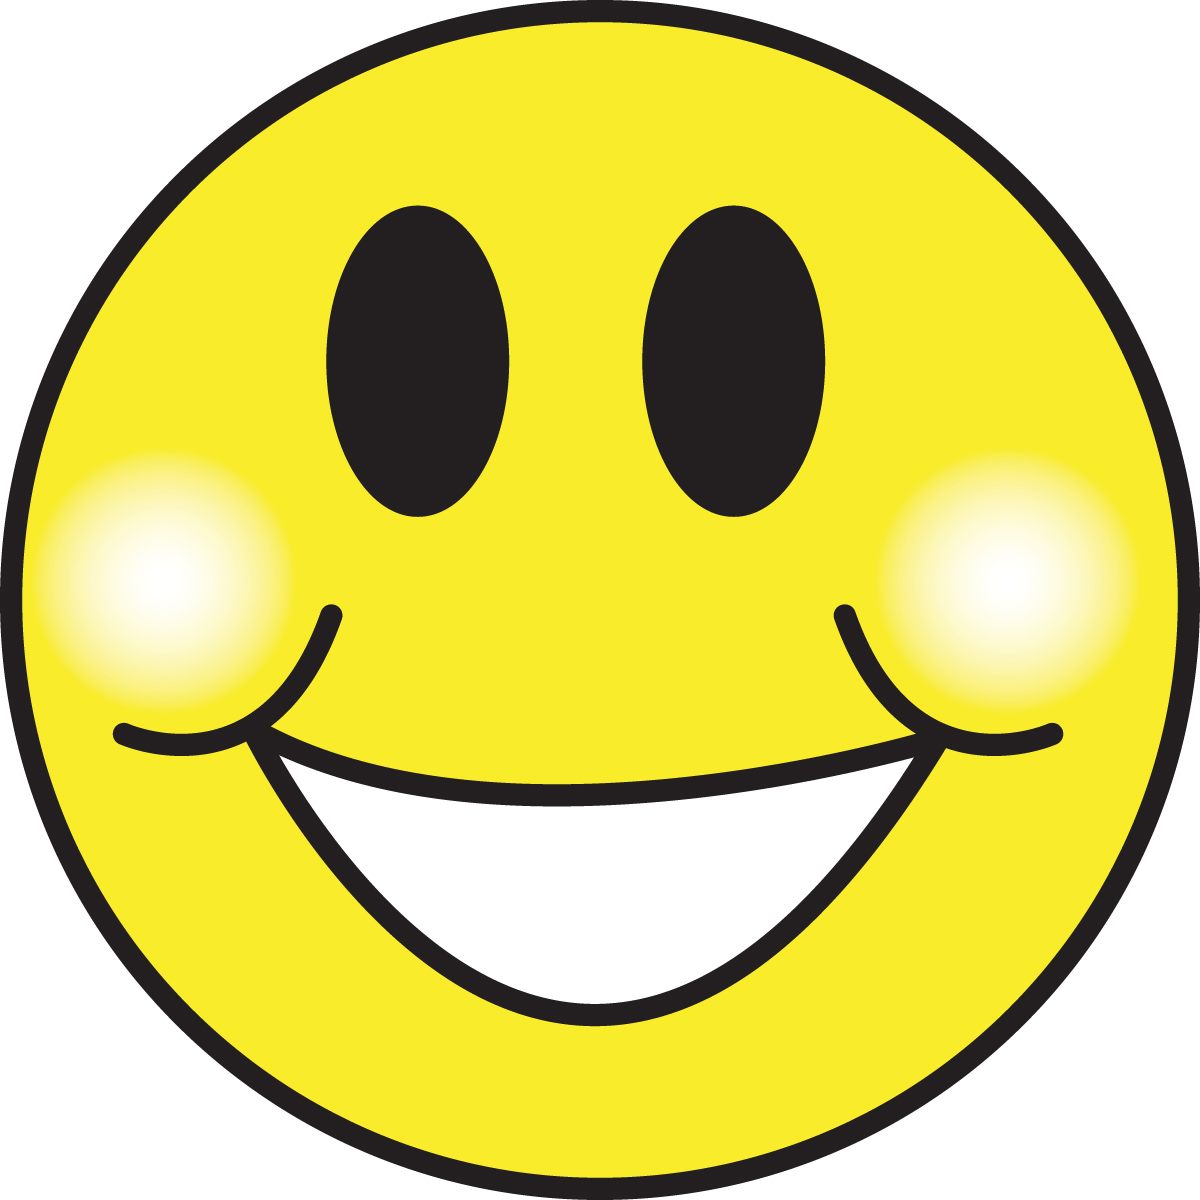 Moving clipart smiley face #14